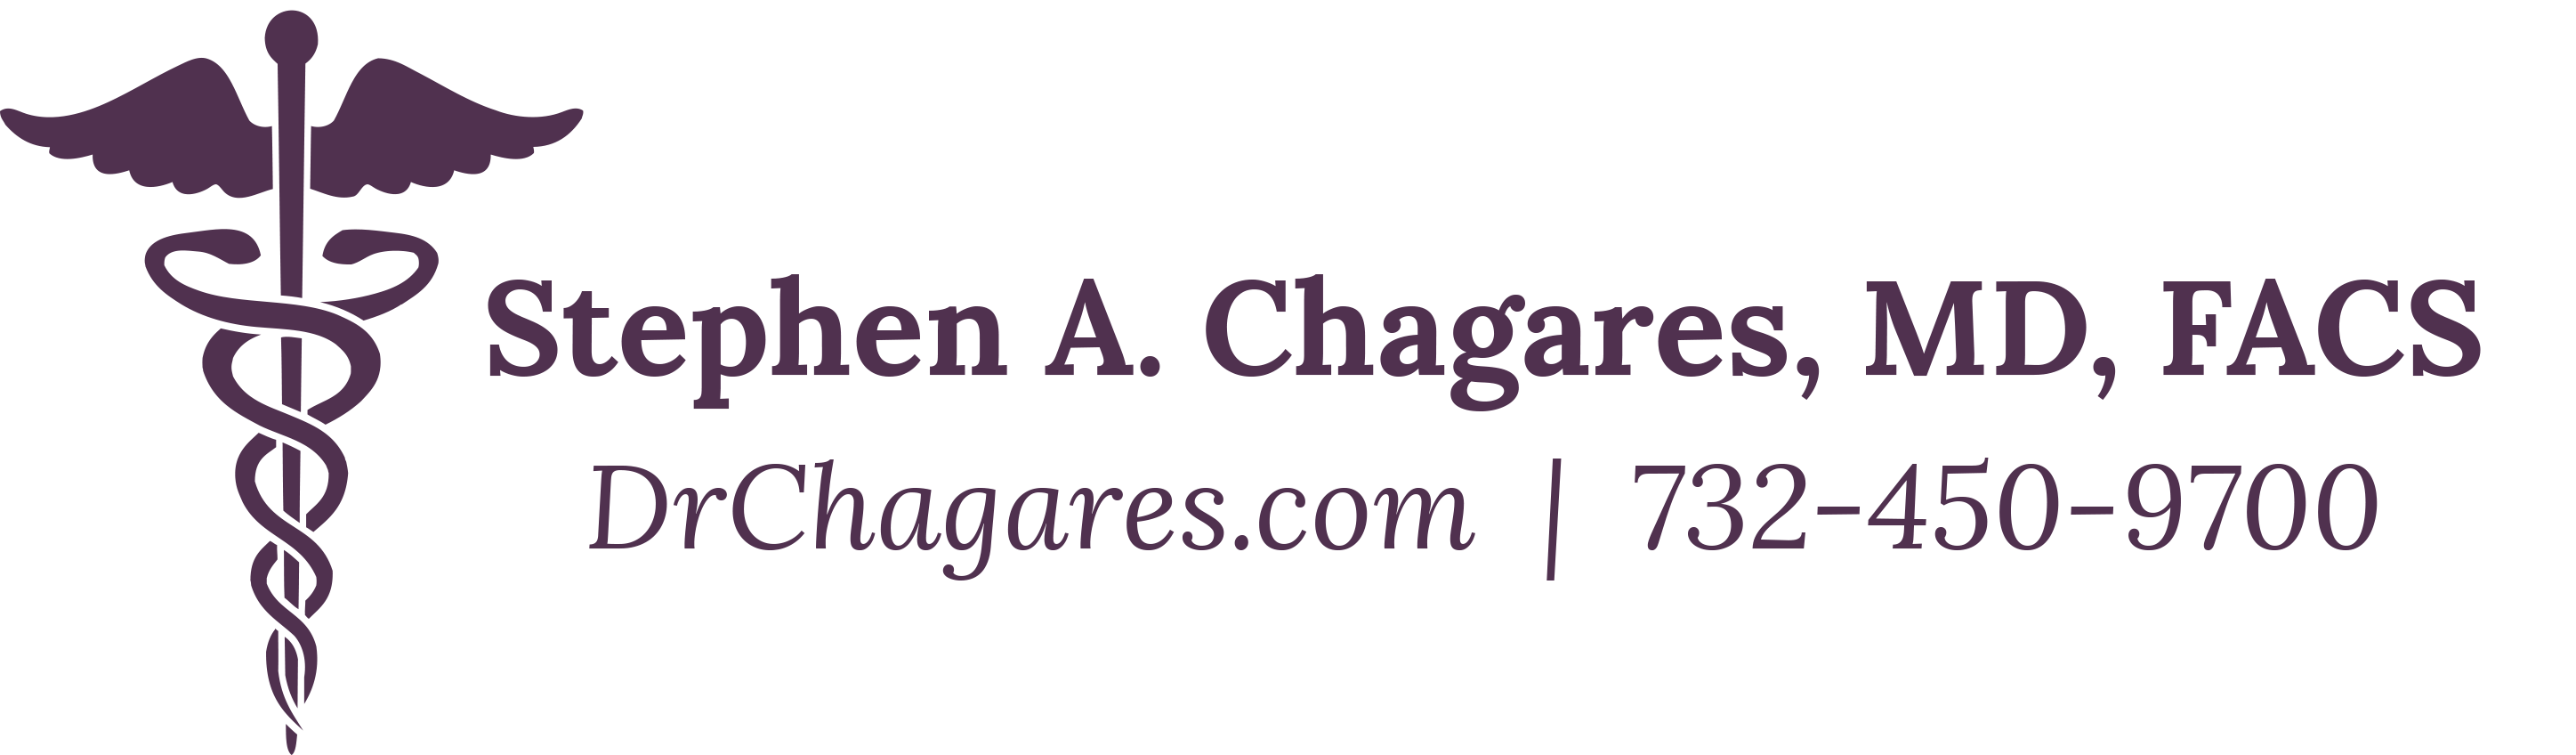 Chagares_logo - TPSNJ.png